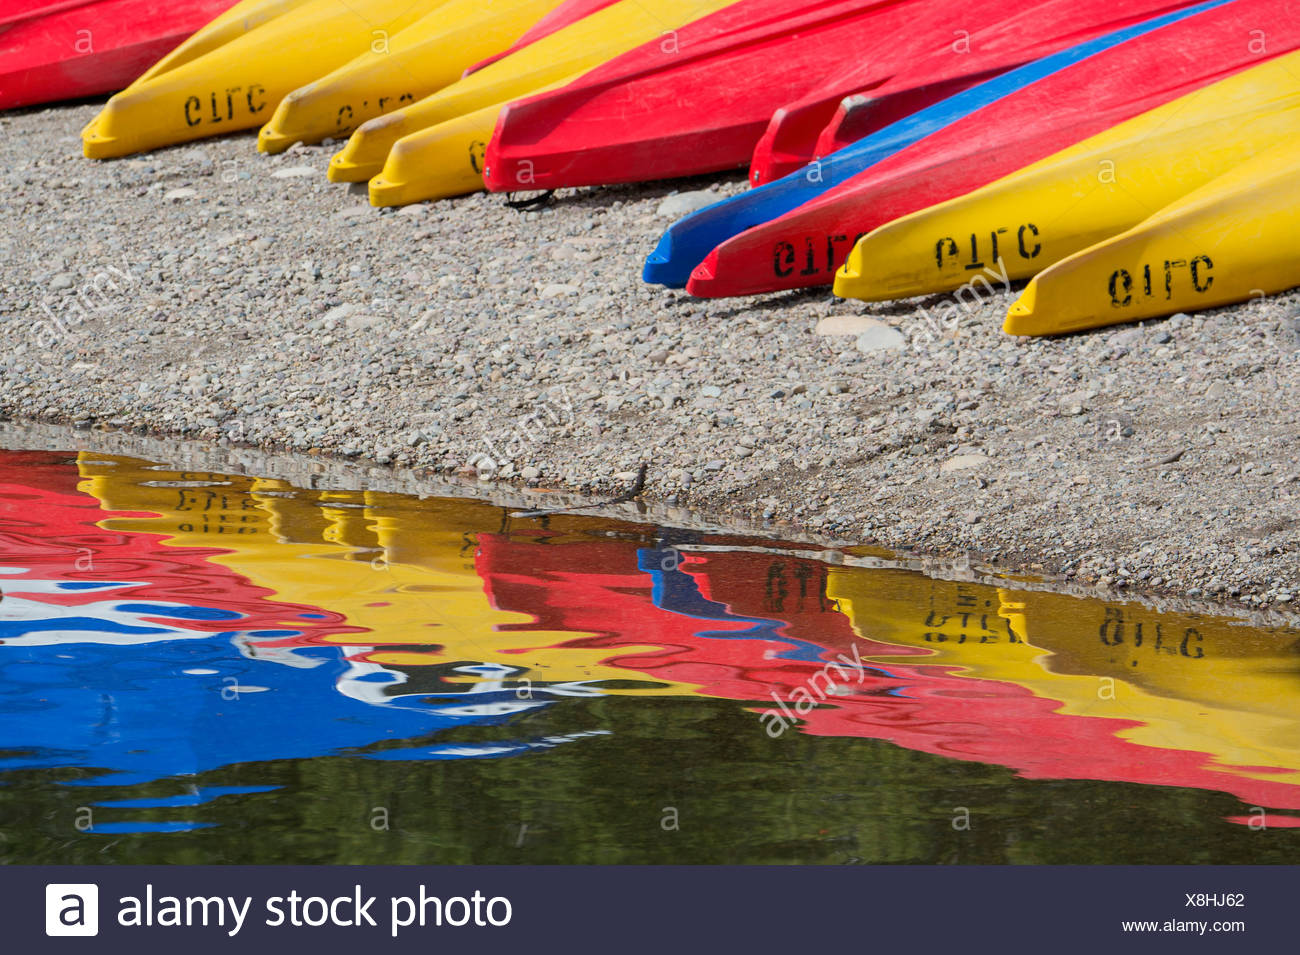 Kayaks for hire, laid out on the shores of Colter Bay at Jackson lake in the Grand Teton National Park. - Stock Image